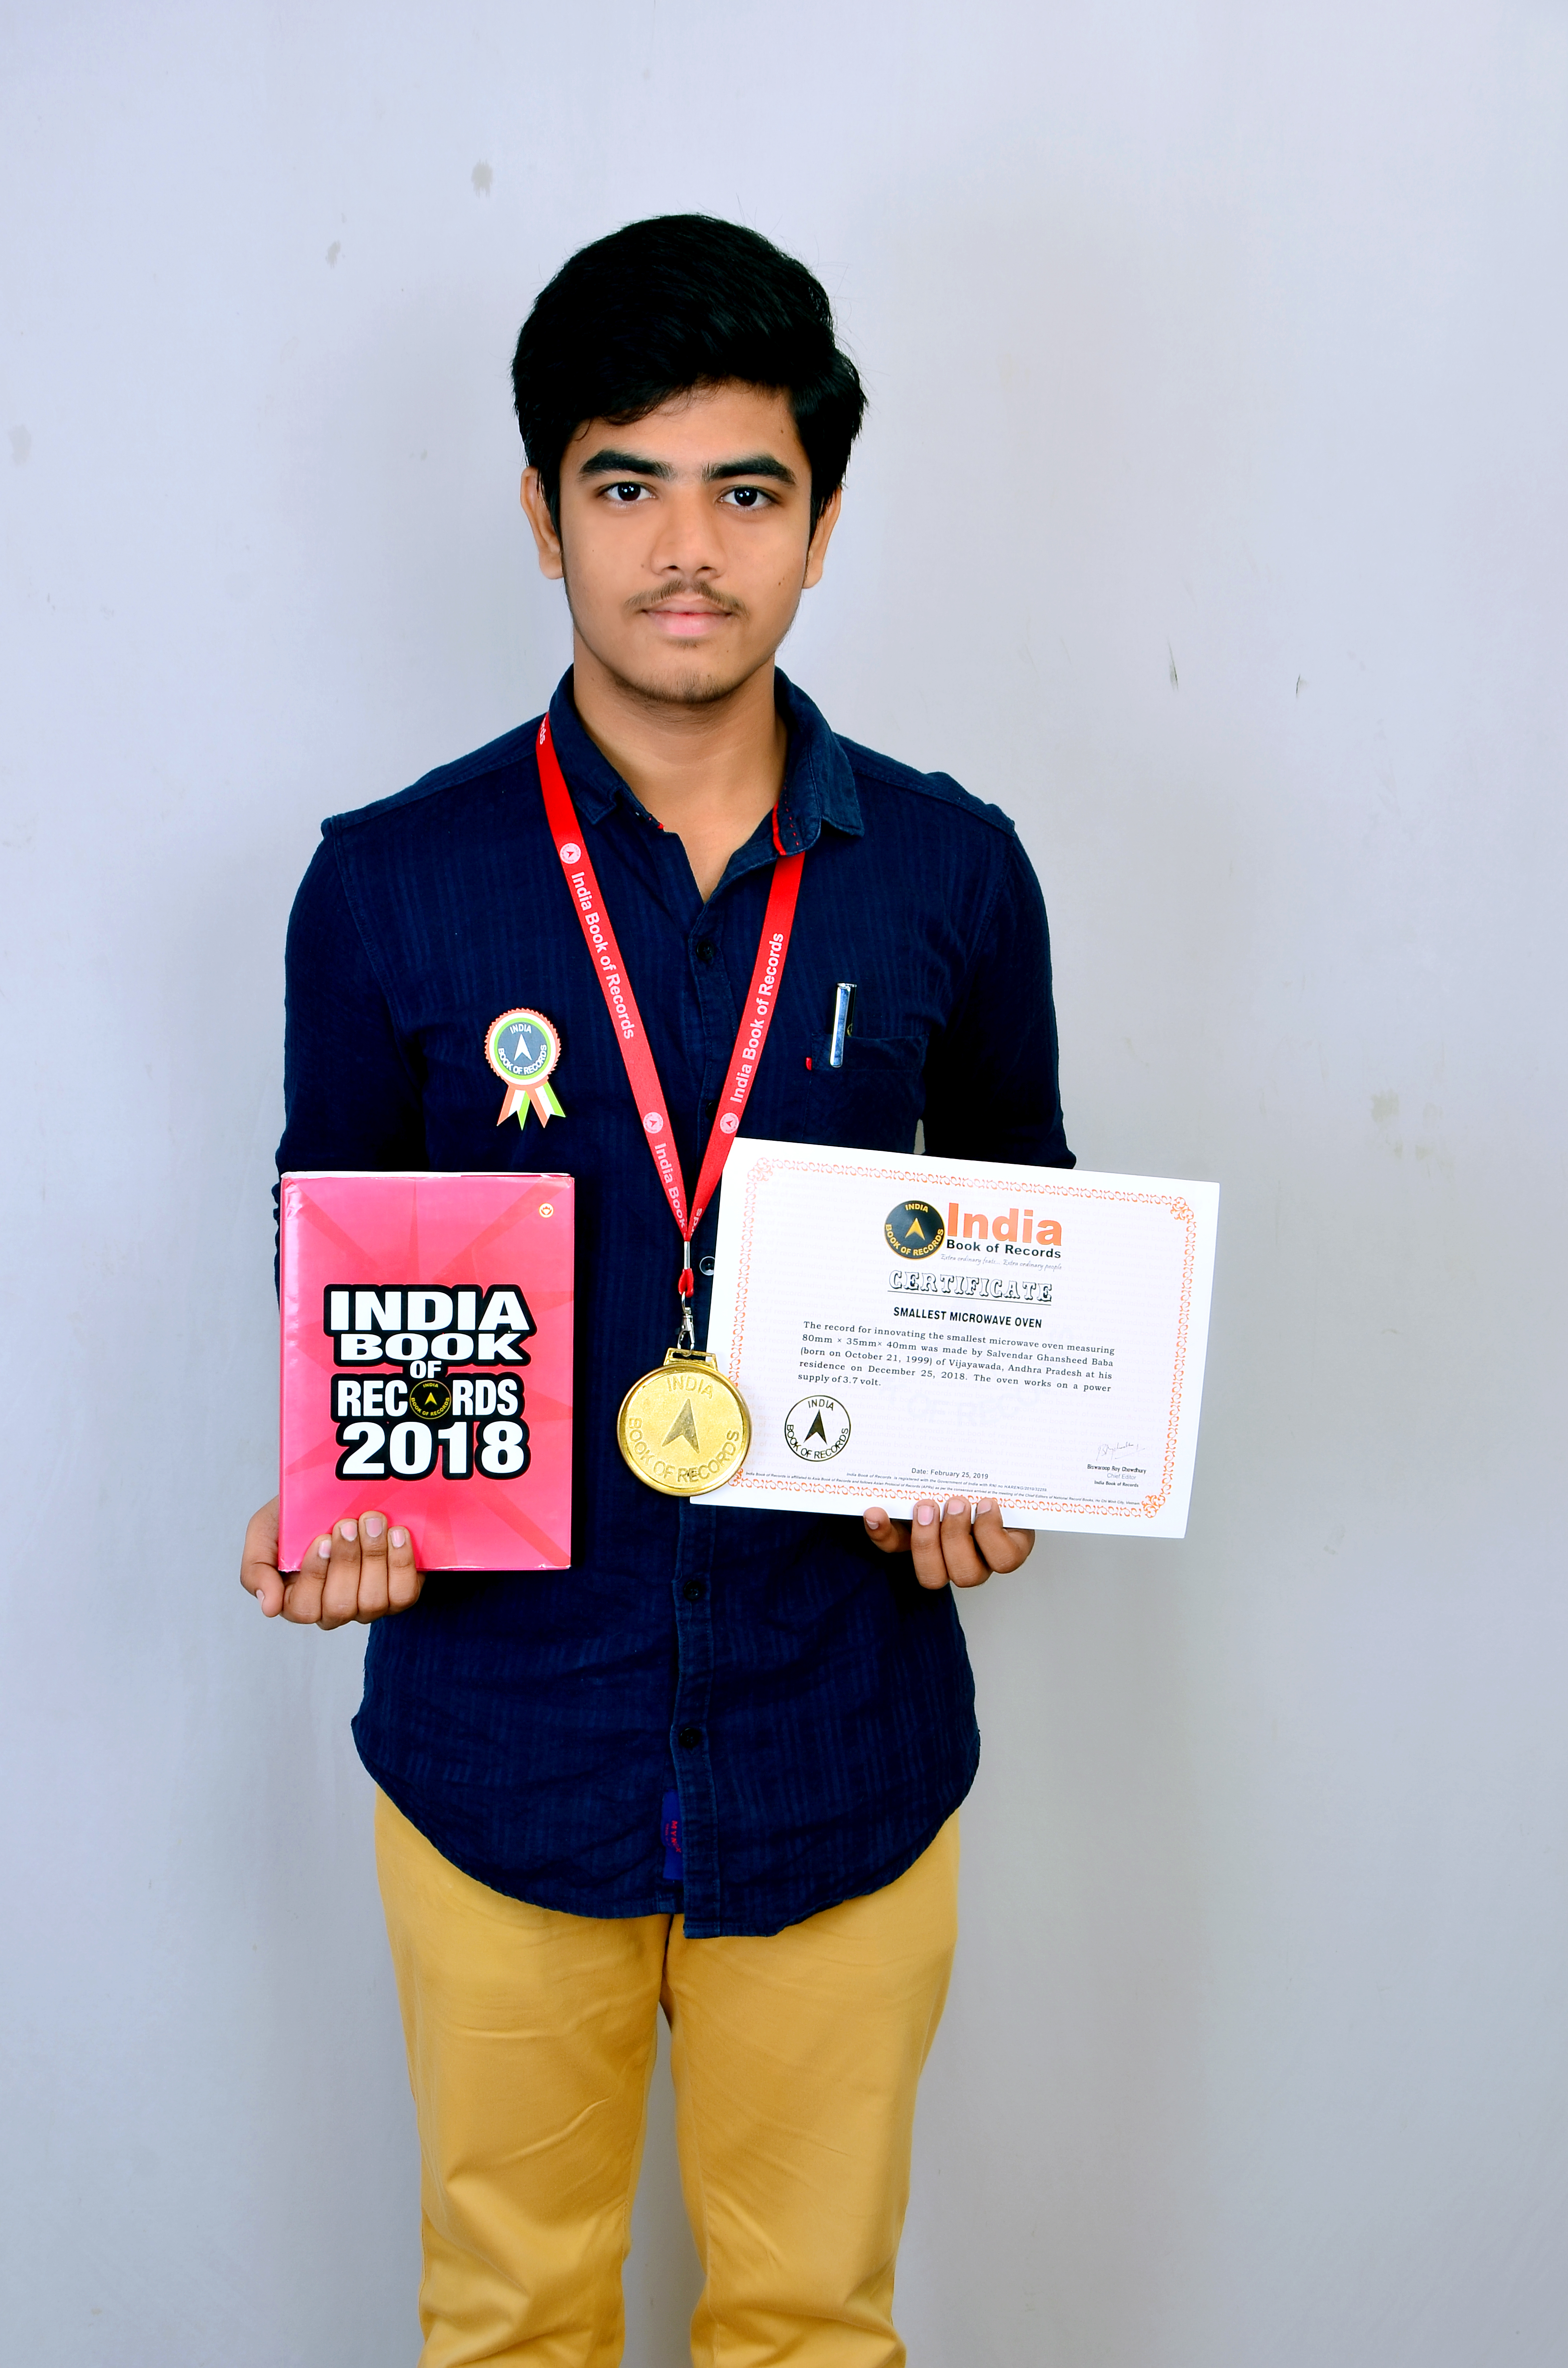 Smallest Microwave Oven India Book Of Records